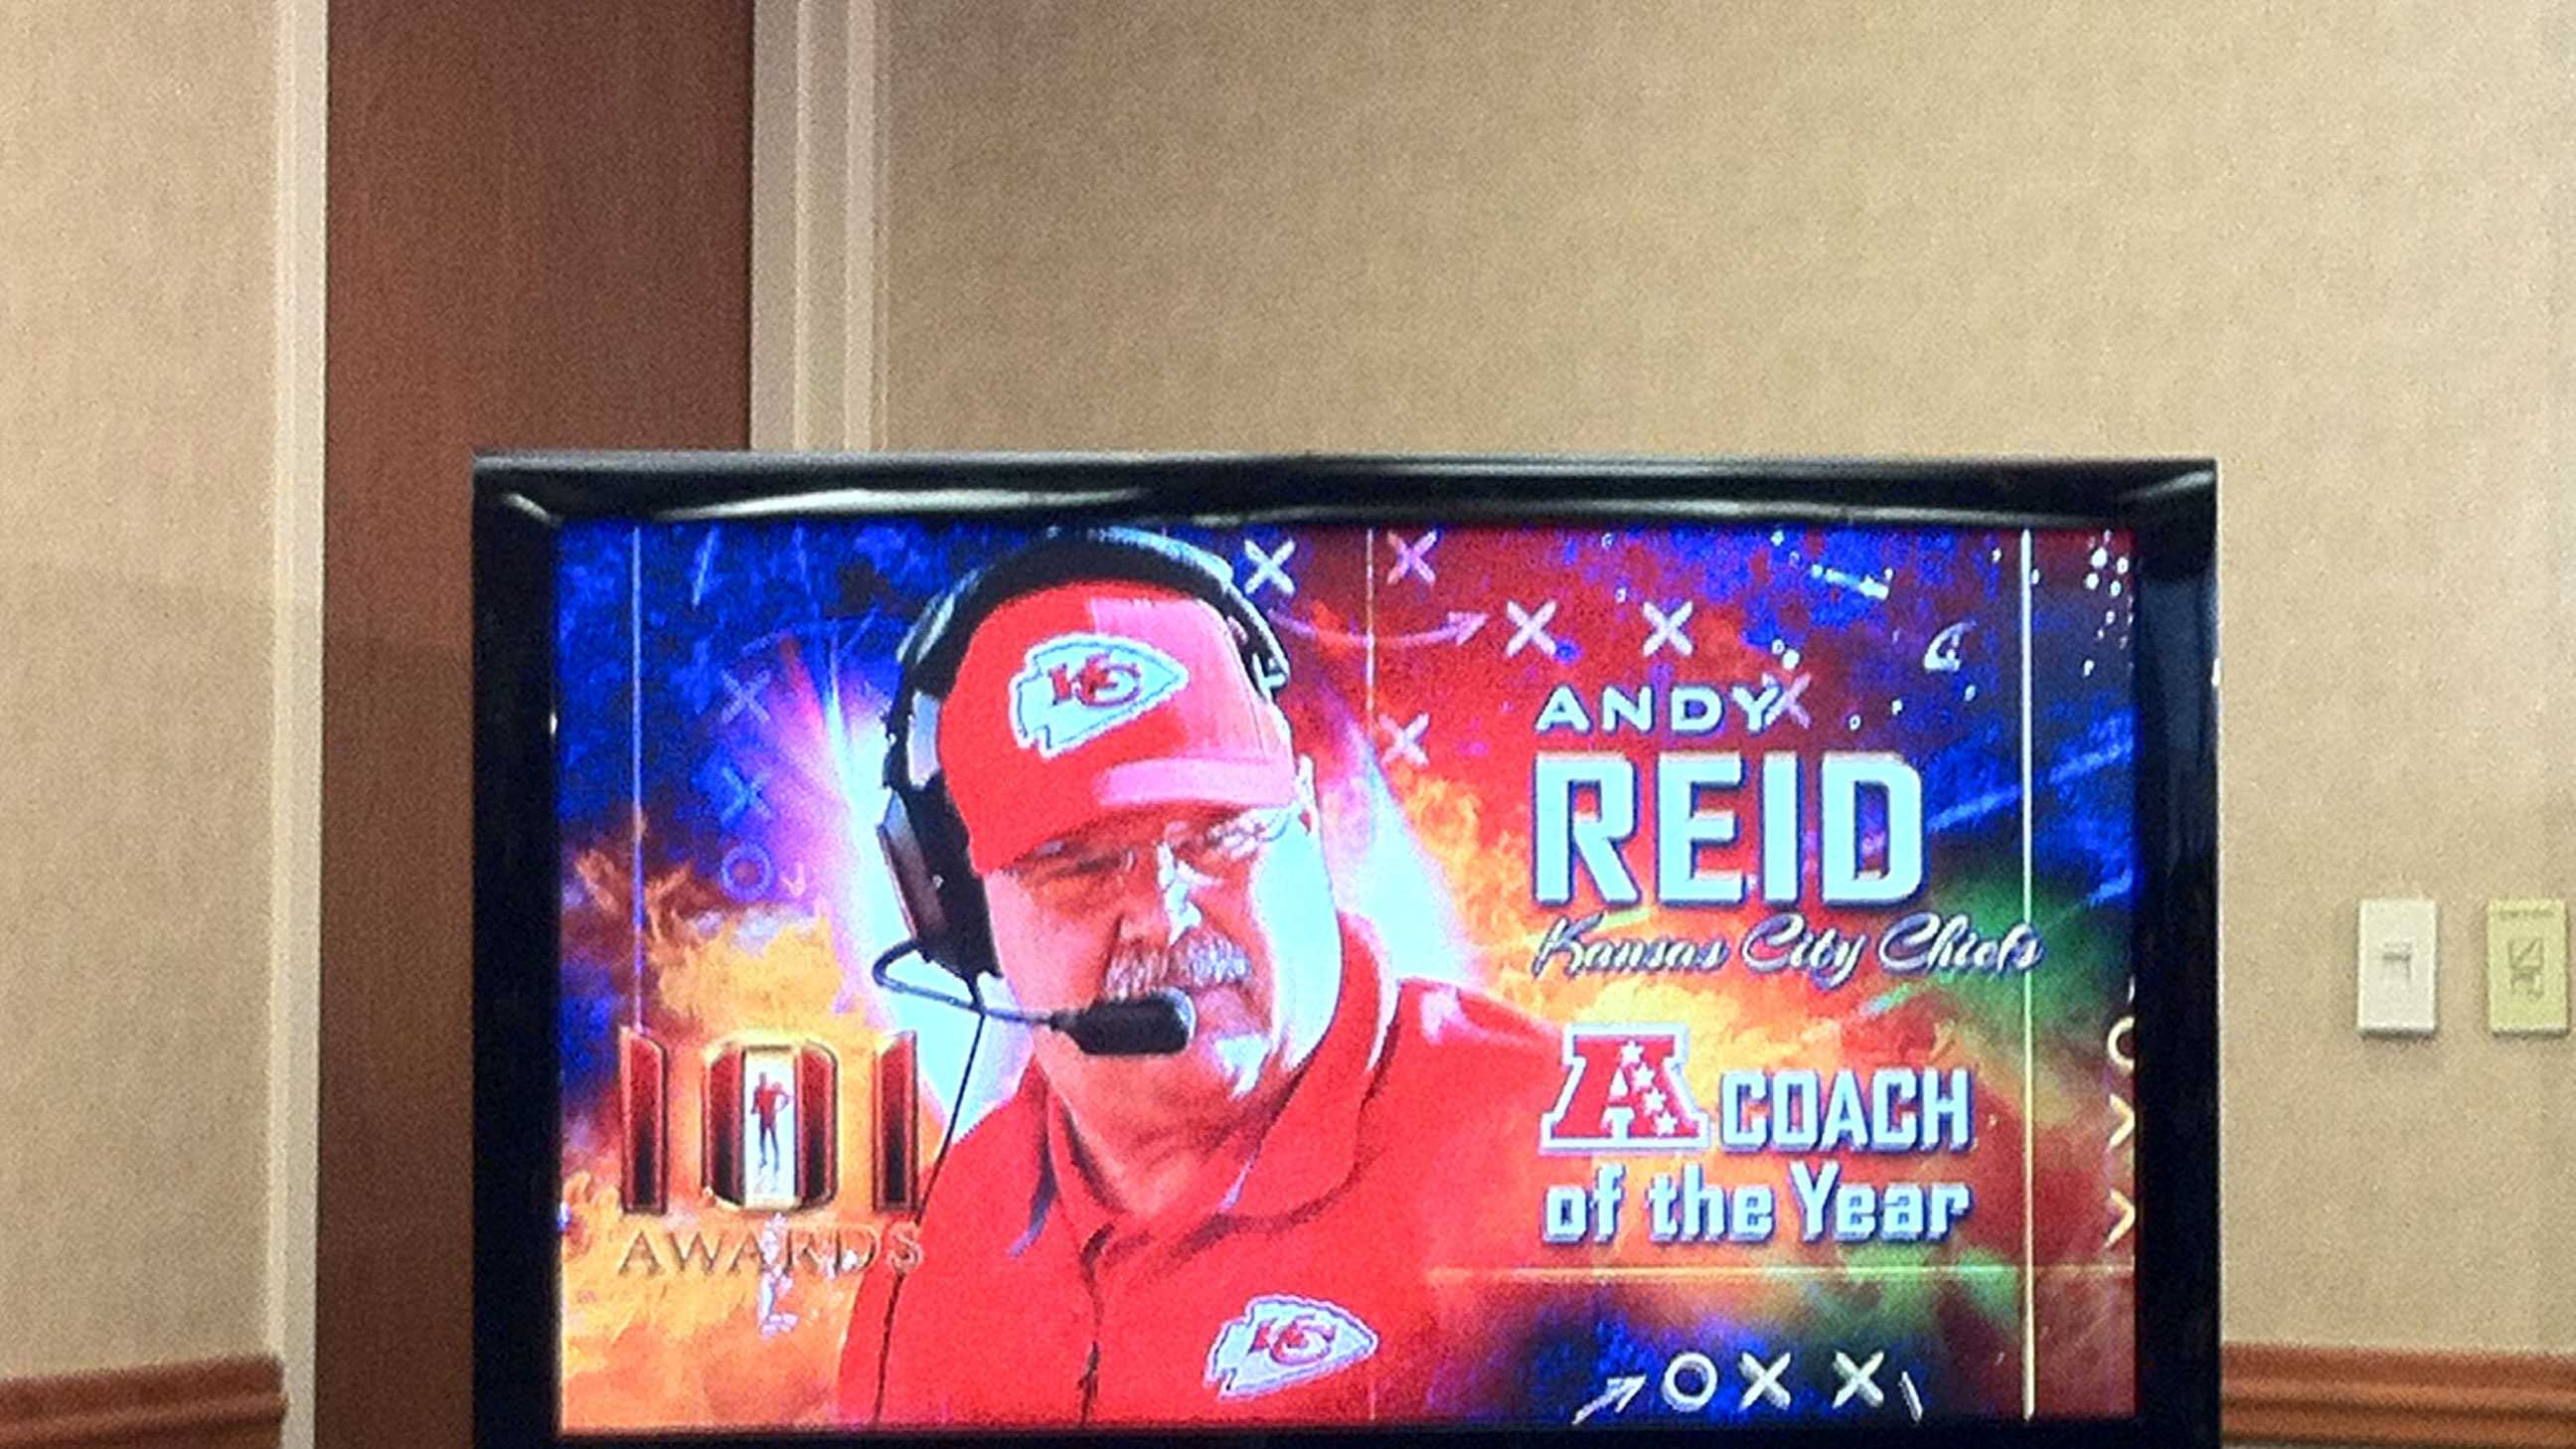 Andy Reid AFC coach of the year